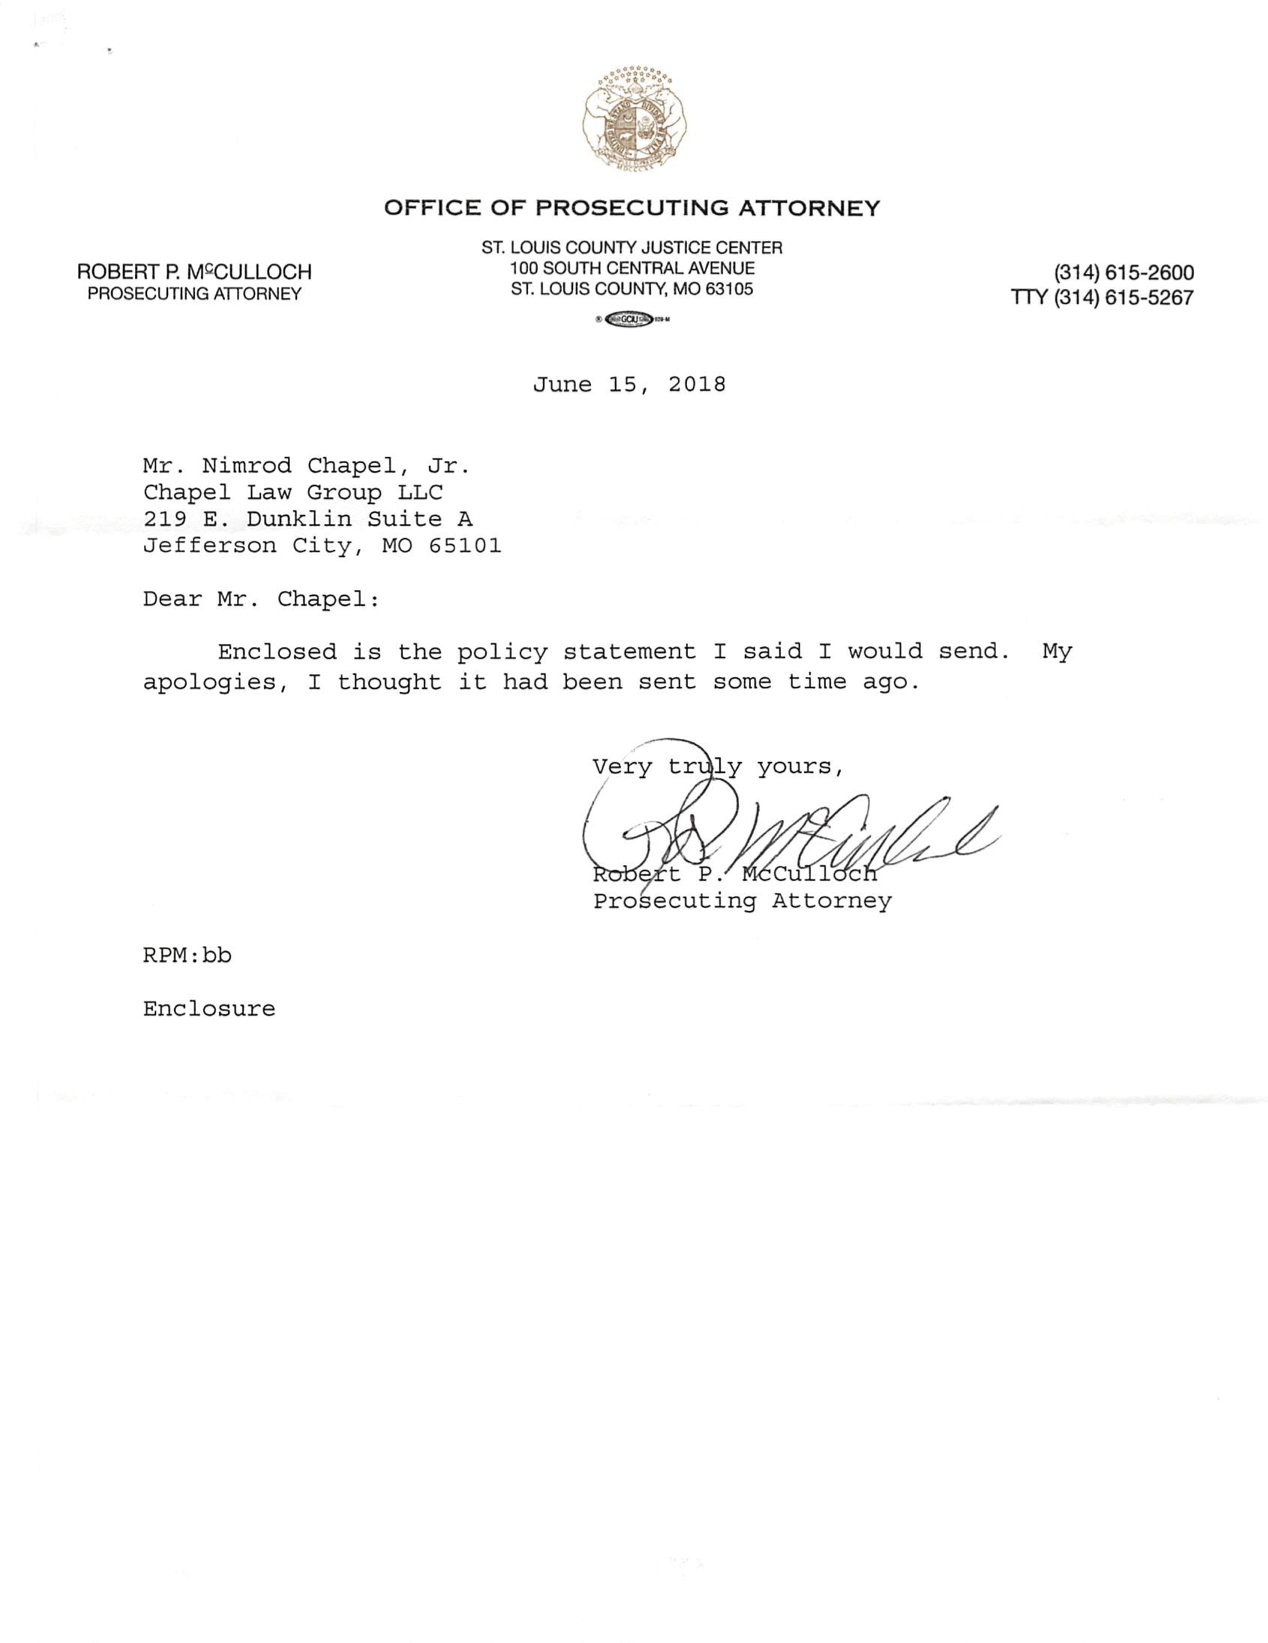 180615 Robert McCulloch Policy Statement.png